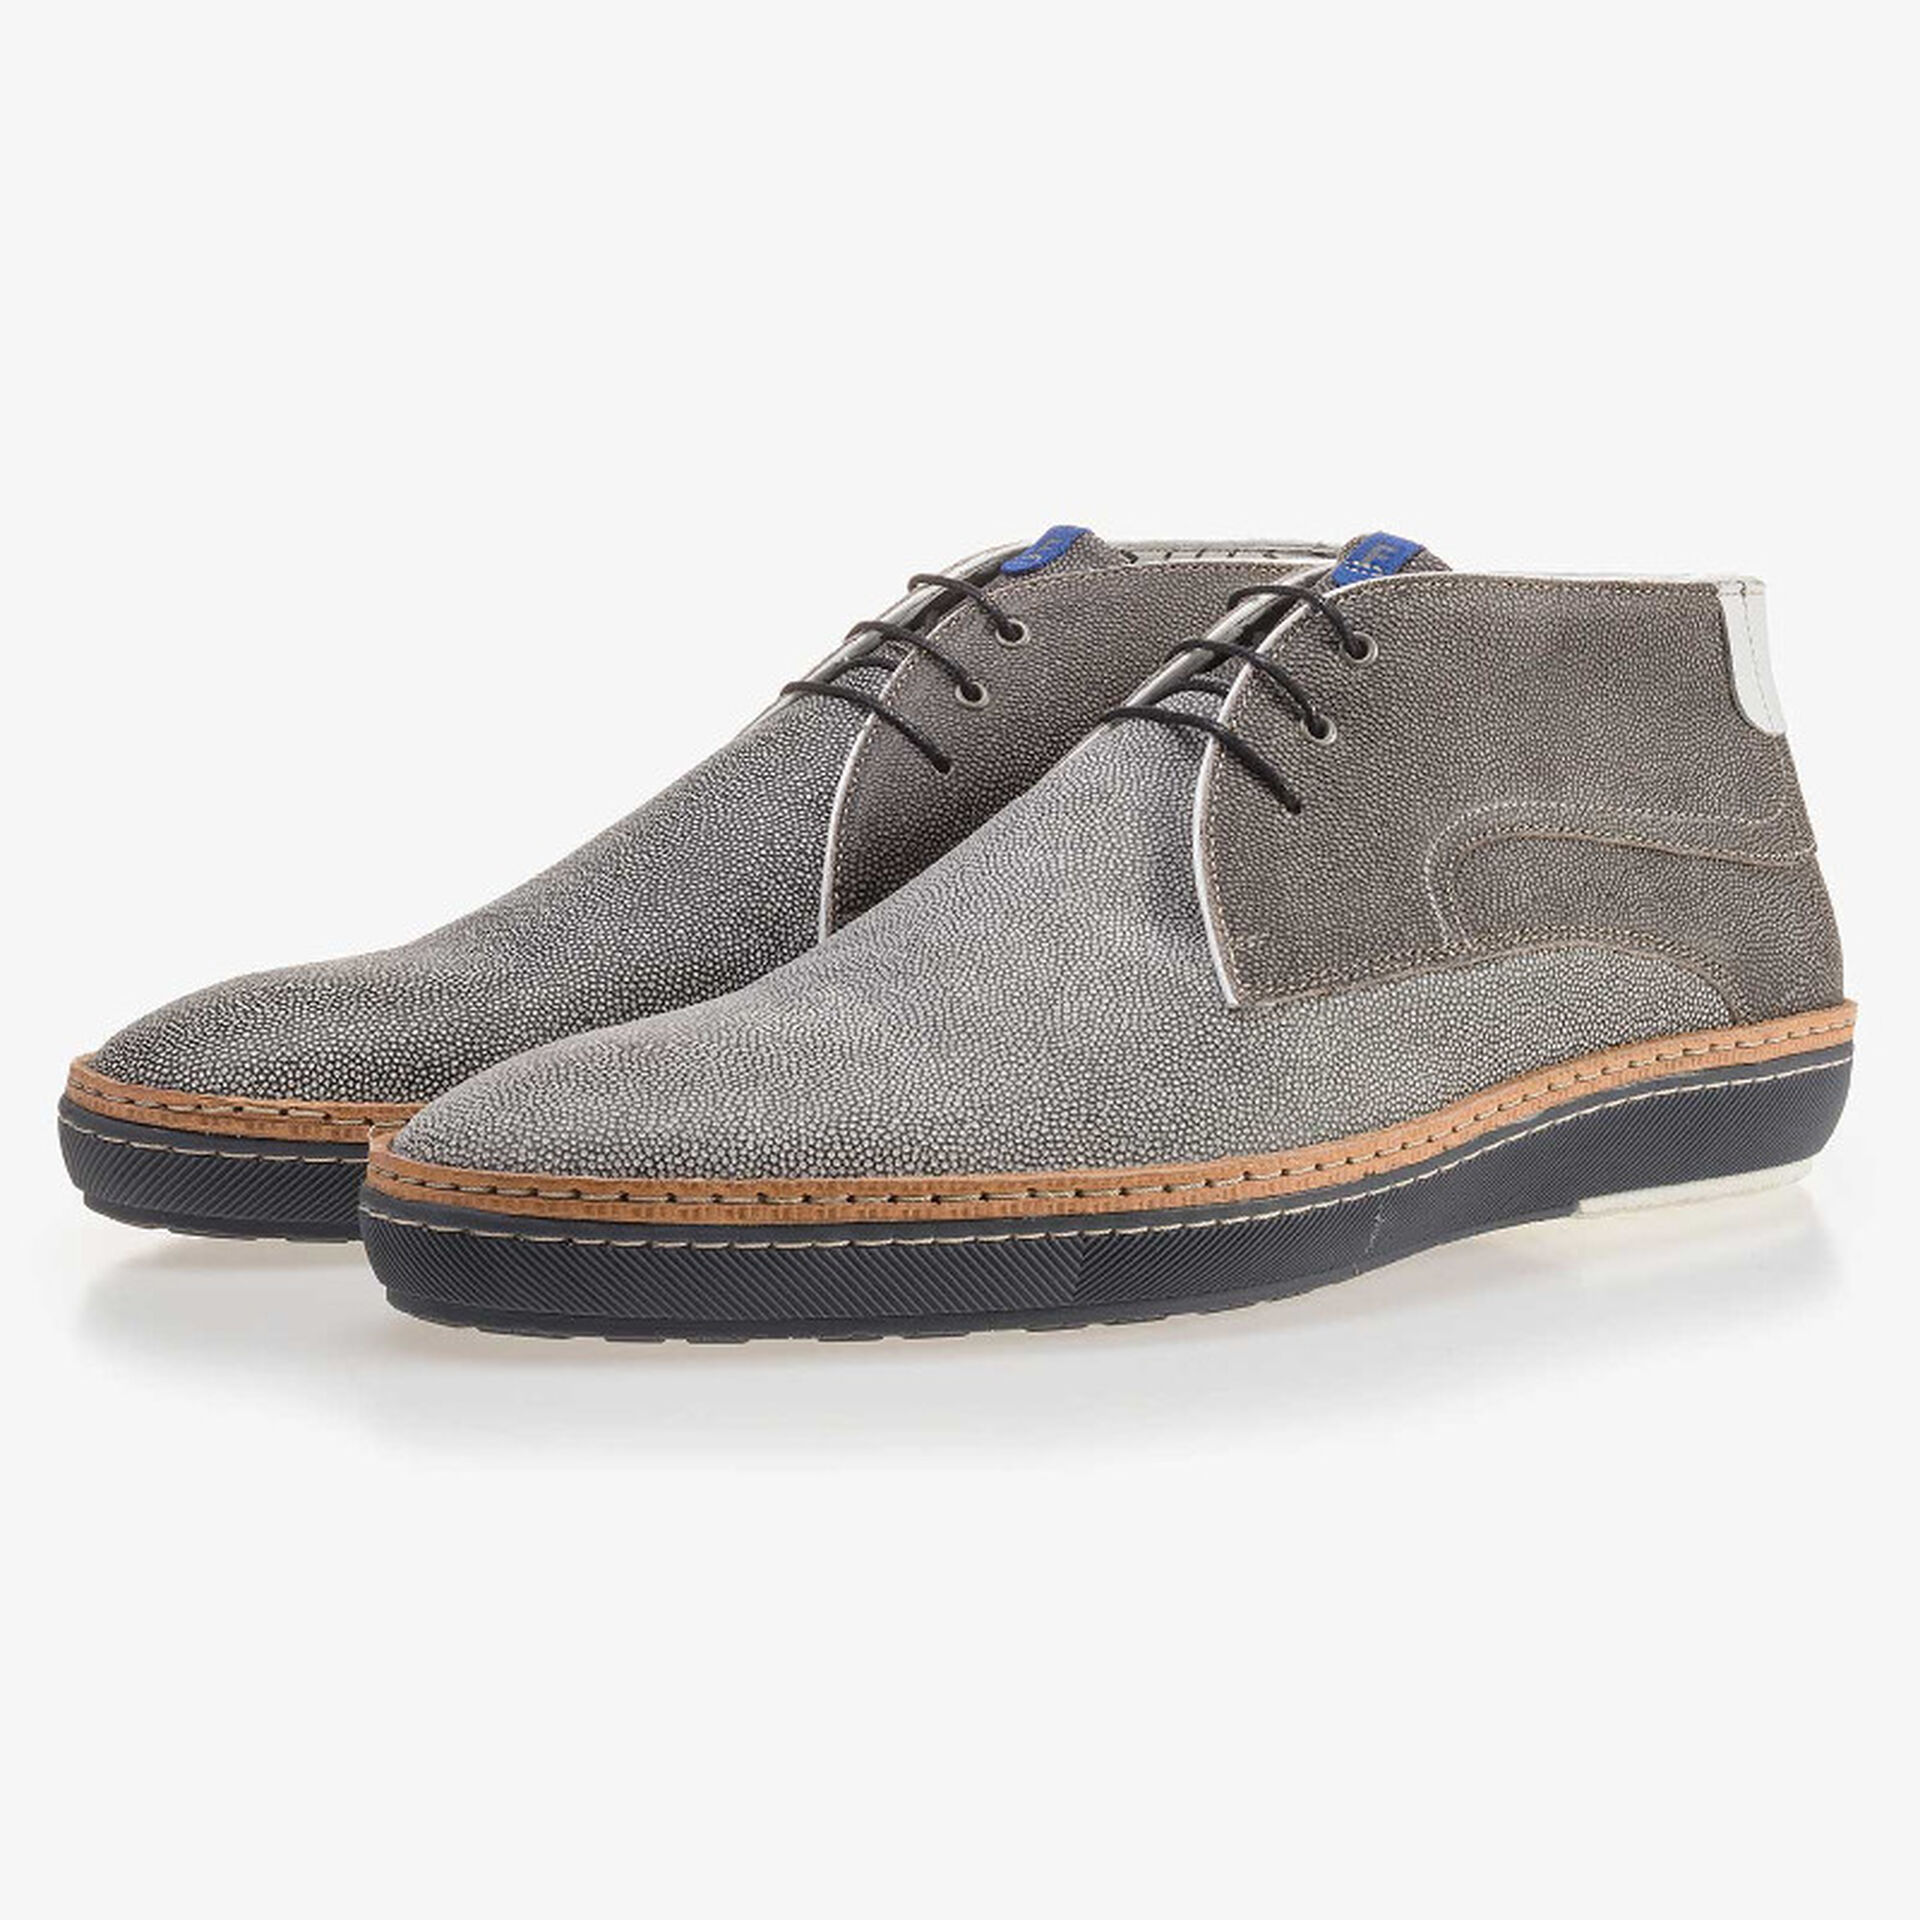 Grey suede leather lace boot with pattern